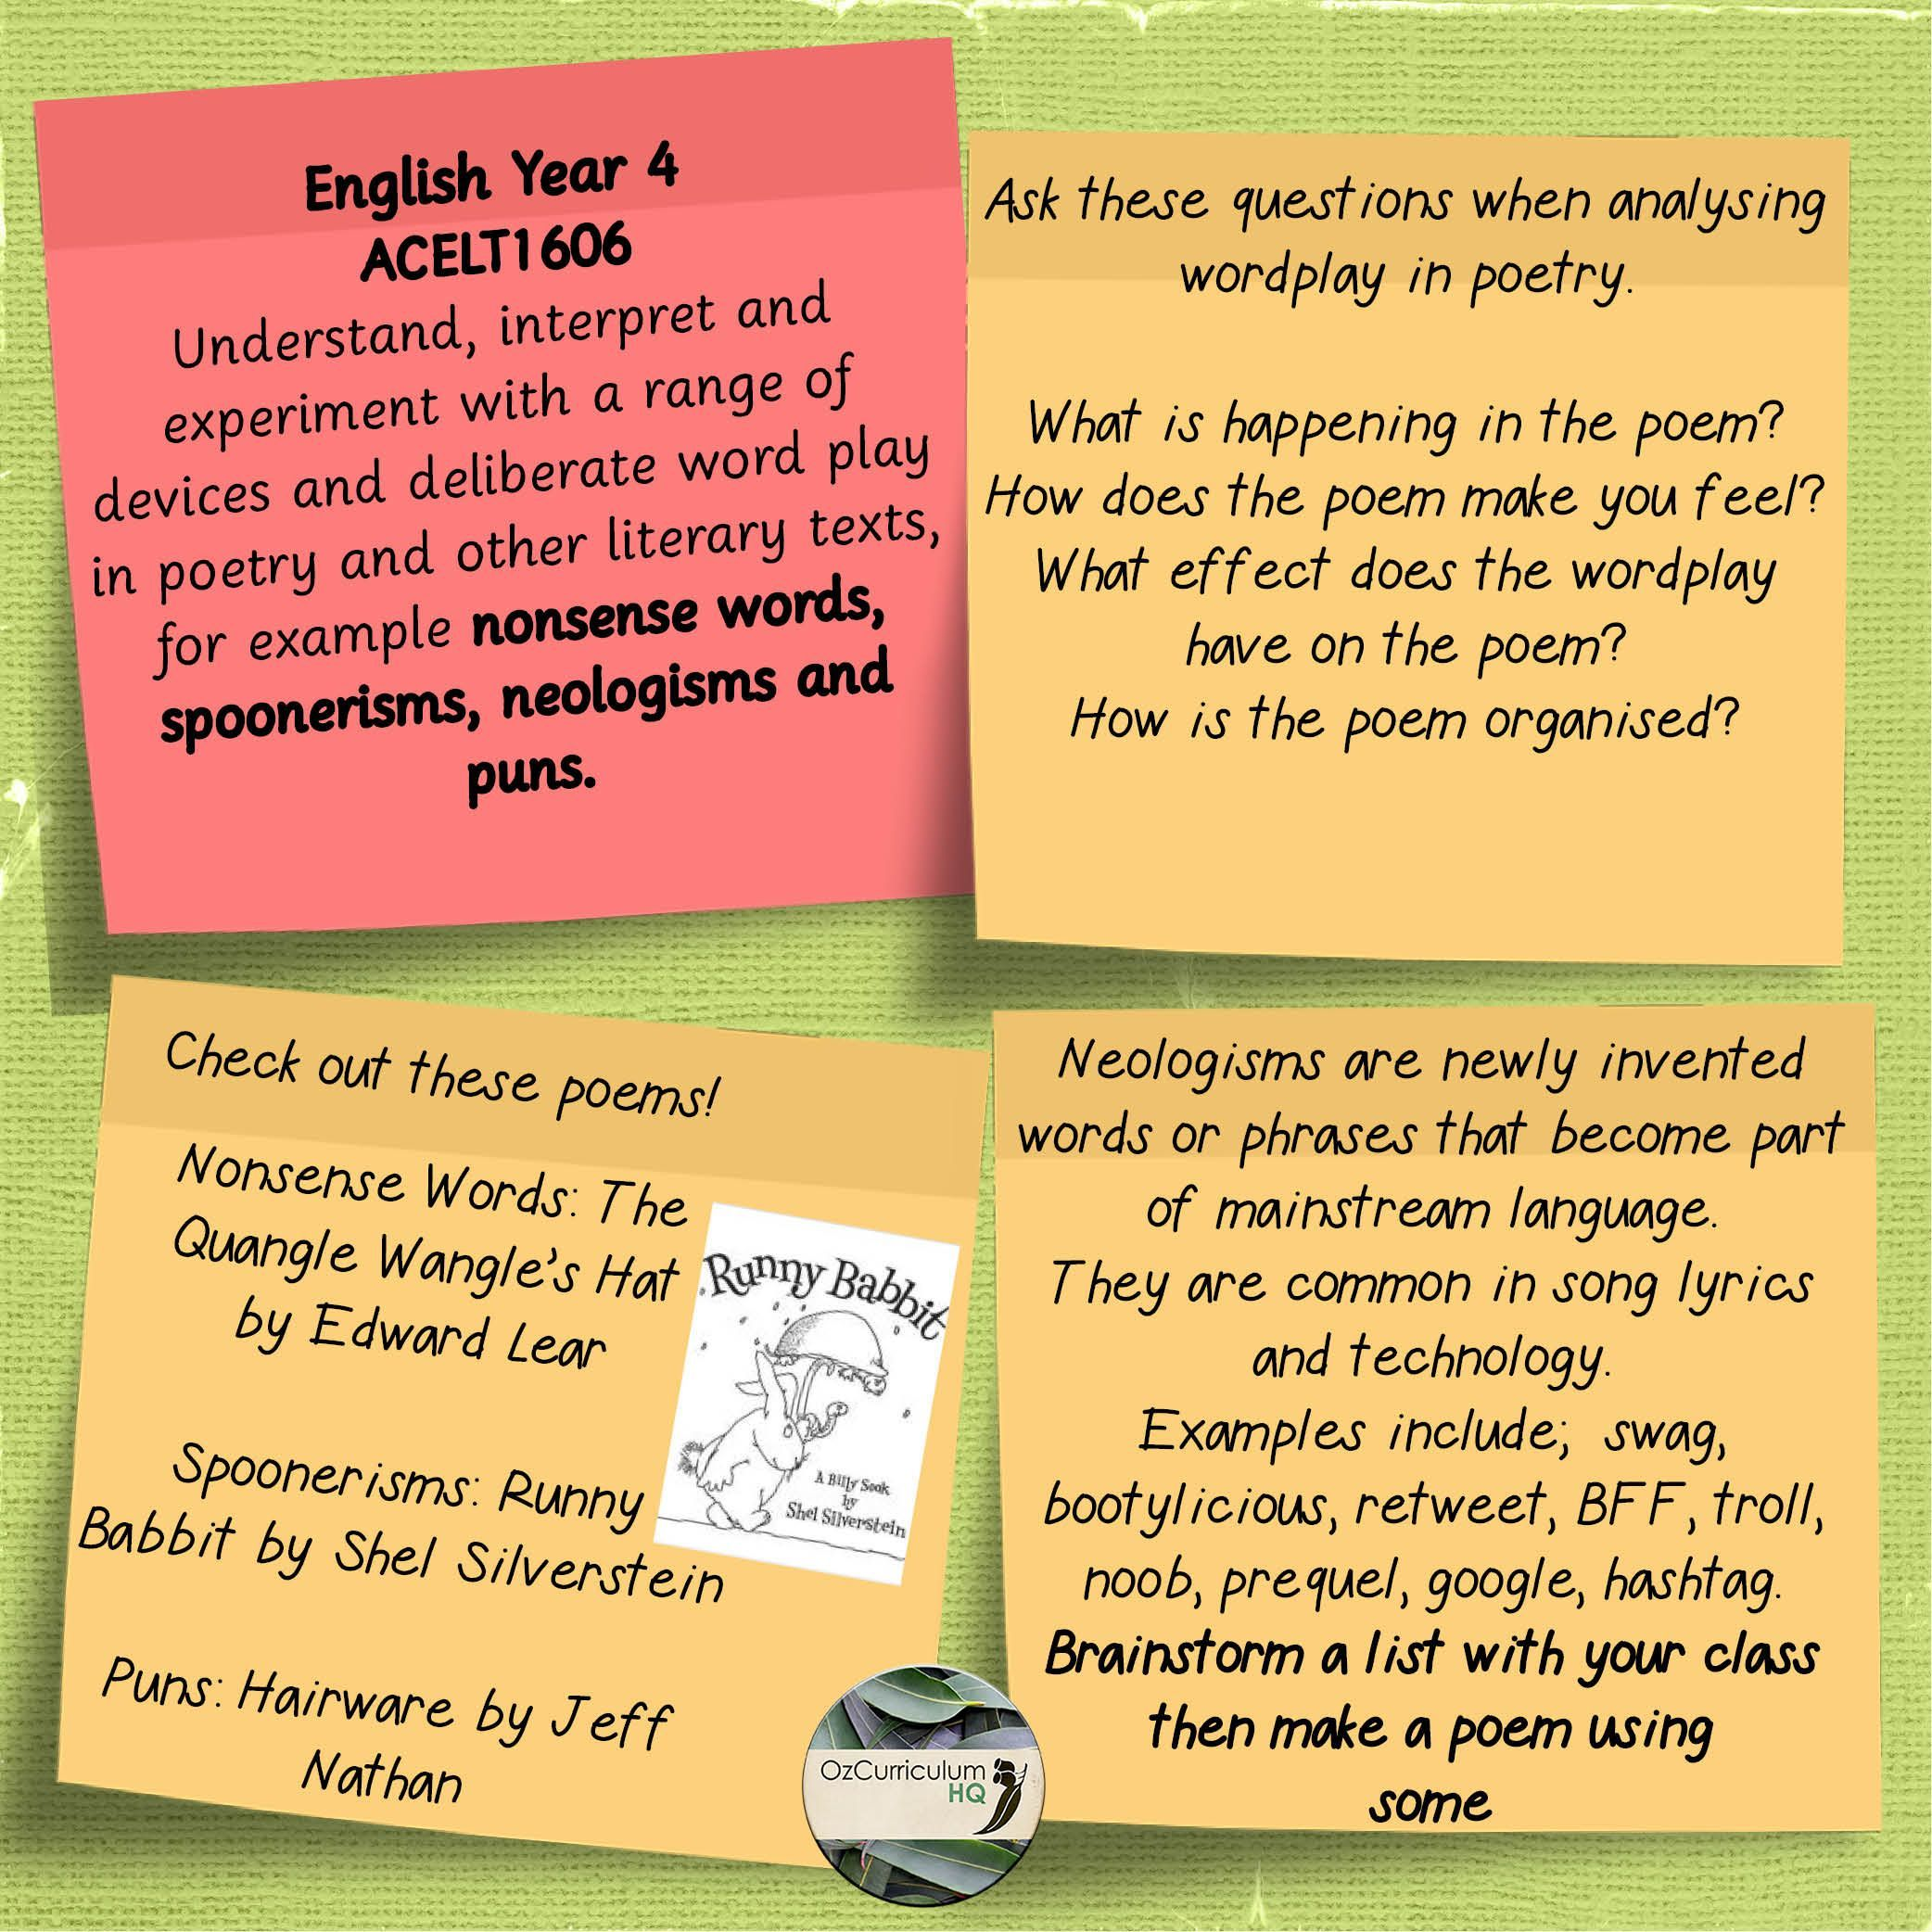 English Year 4 Acelt1606 Nonsense Words Spoonerisms Neologisms And Puns Nonsense Words Teaching Poetry Literary Te In 2021 Literary Text Nonsense Words Teaching Poetry